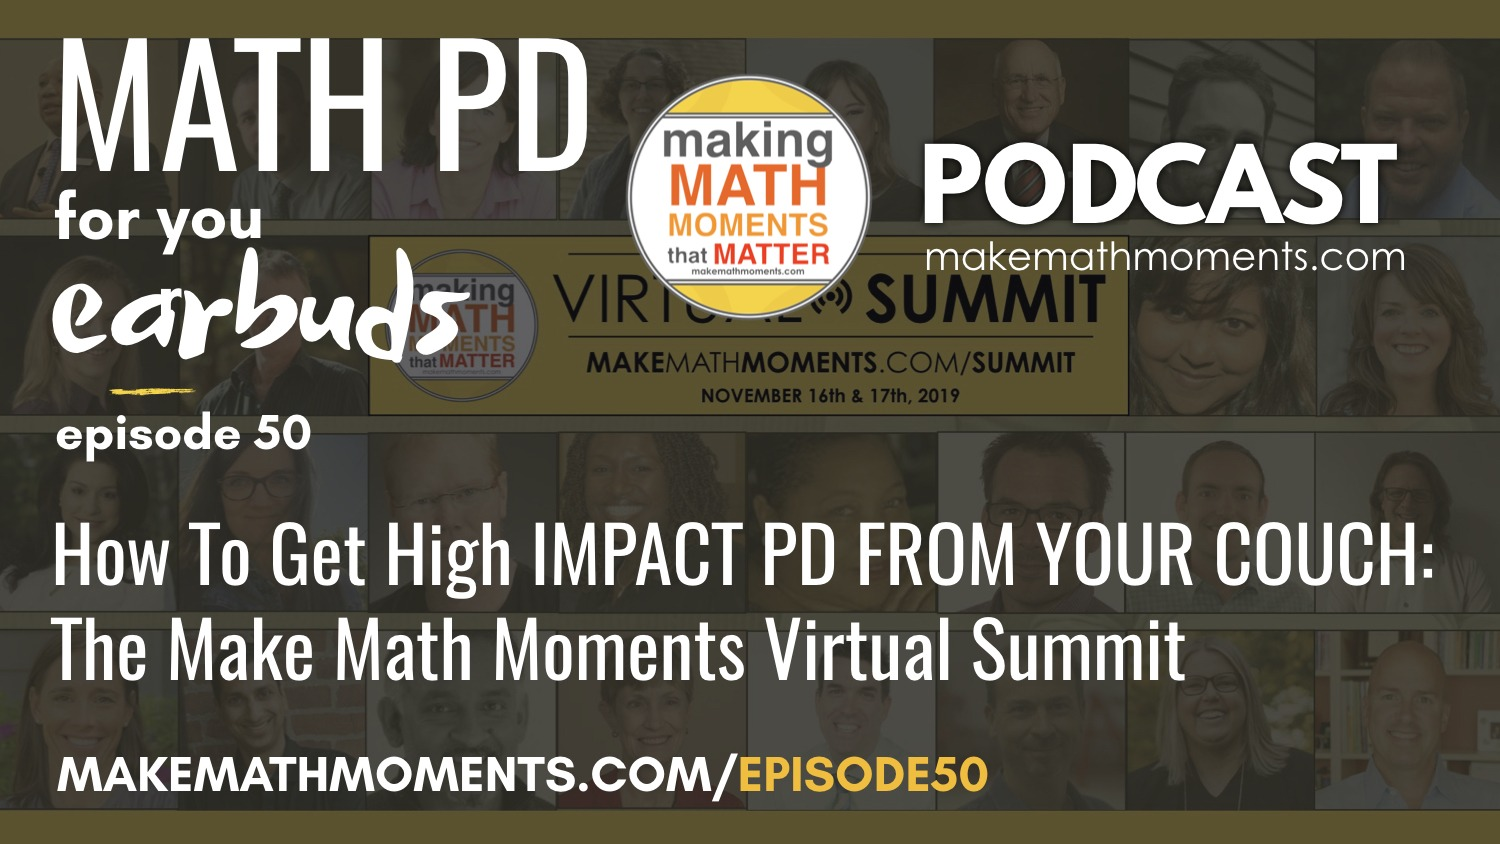 Episode #50: How To Get High IMPACT PD FROM YOUR COUCH: The Make Math Moments Virtual Summit